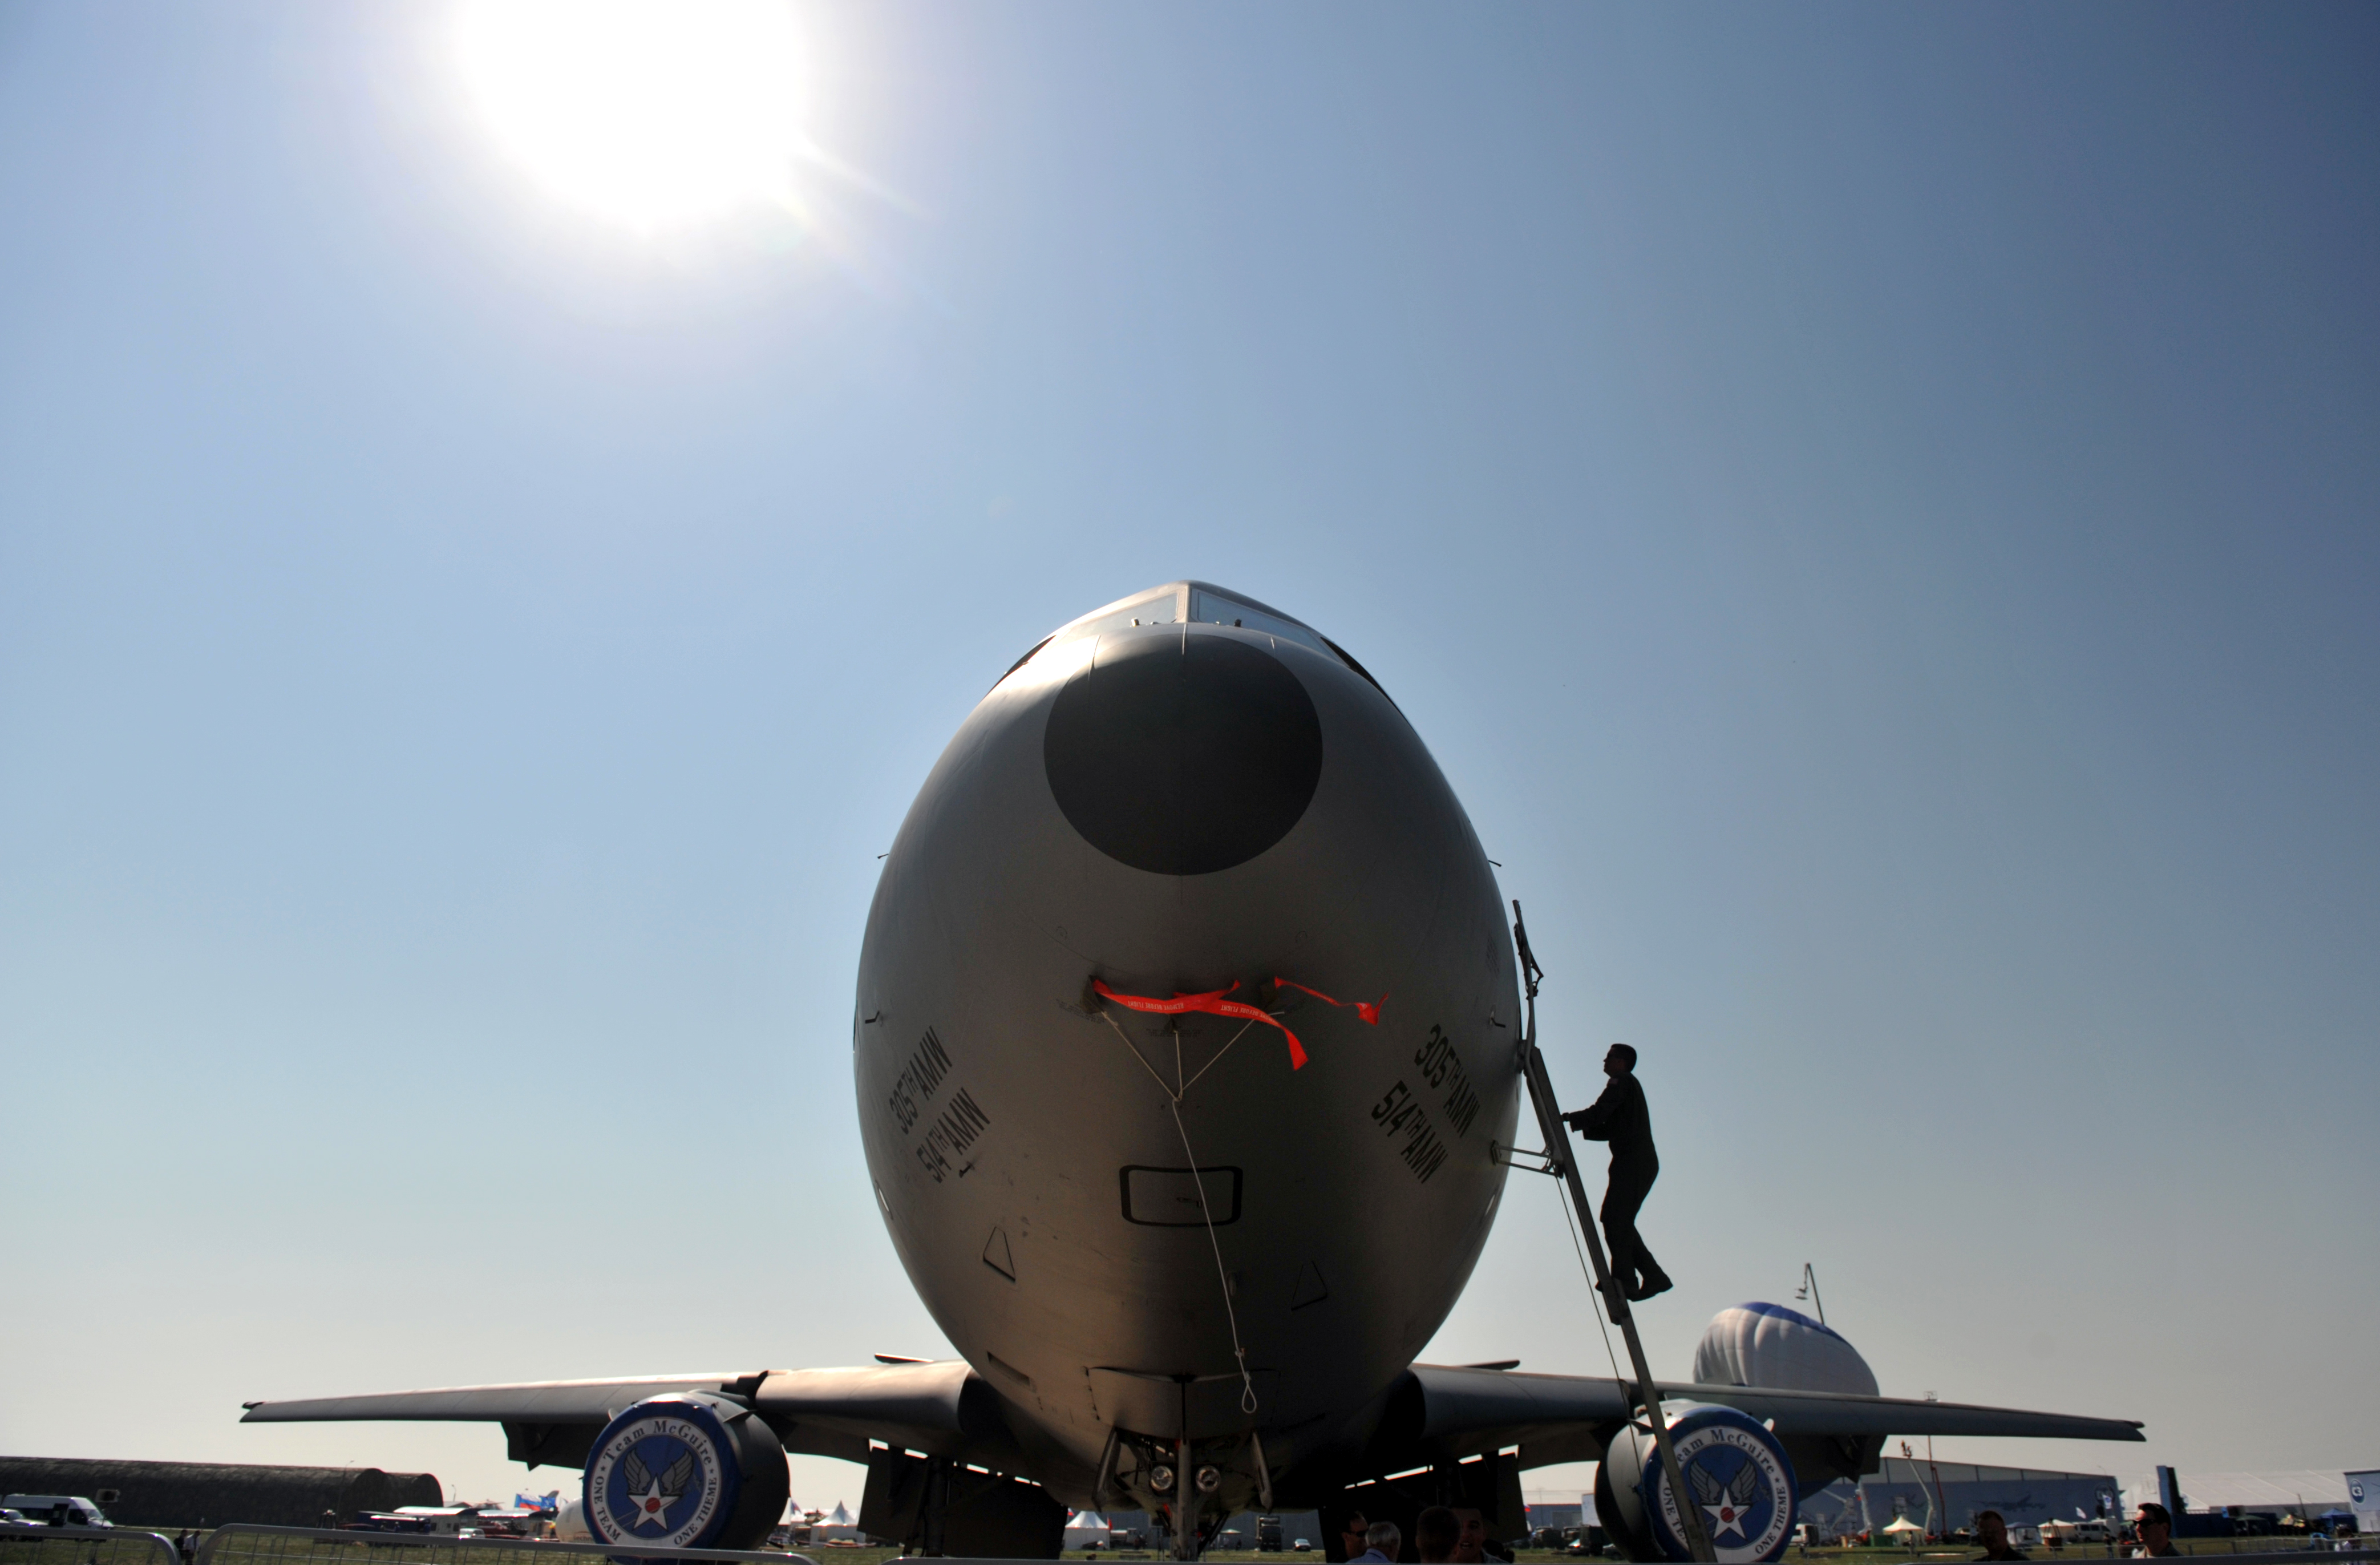 U.S. Air Force C-17 cargo planes, like this one at a Russian air base in 2011, are protected by onboard jammers, a capability not on most civilian airliners.